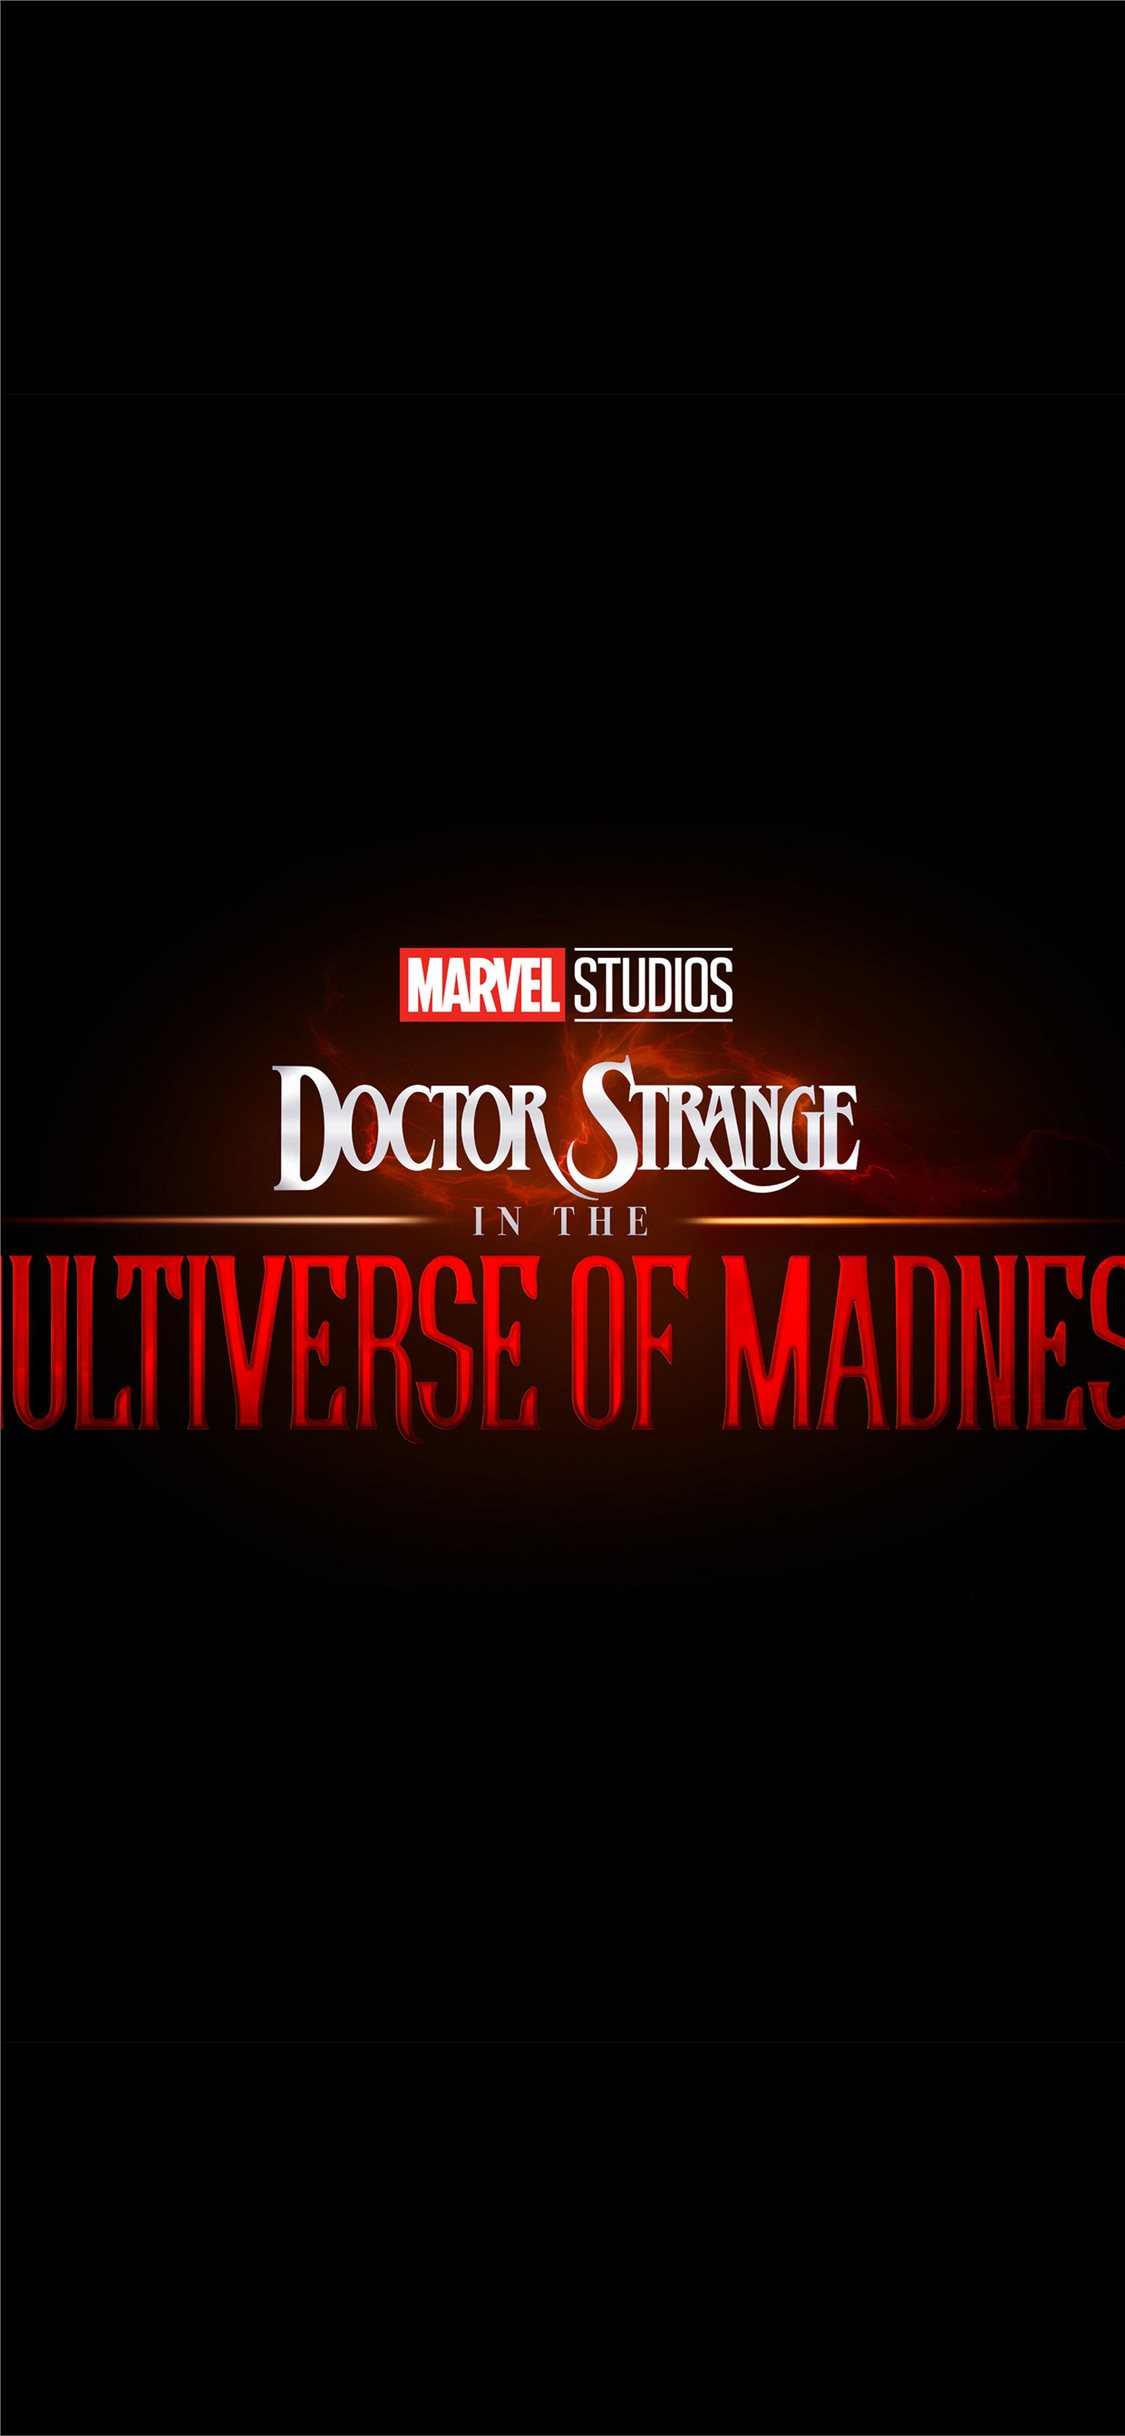 Doctor Strange In The Multiverse Of Madness Iphone Wallpapers Free